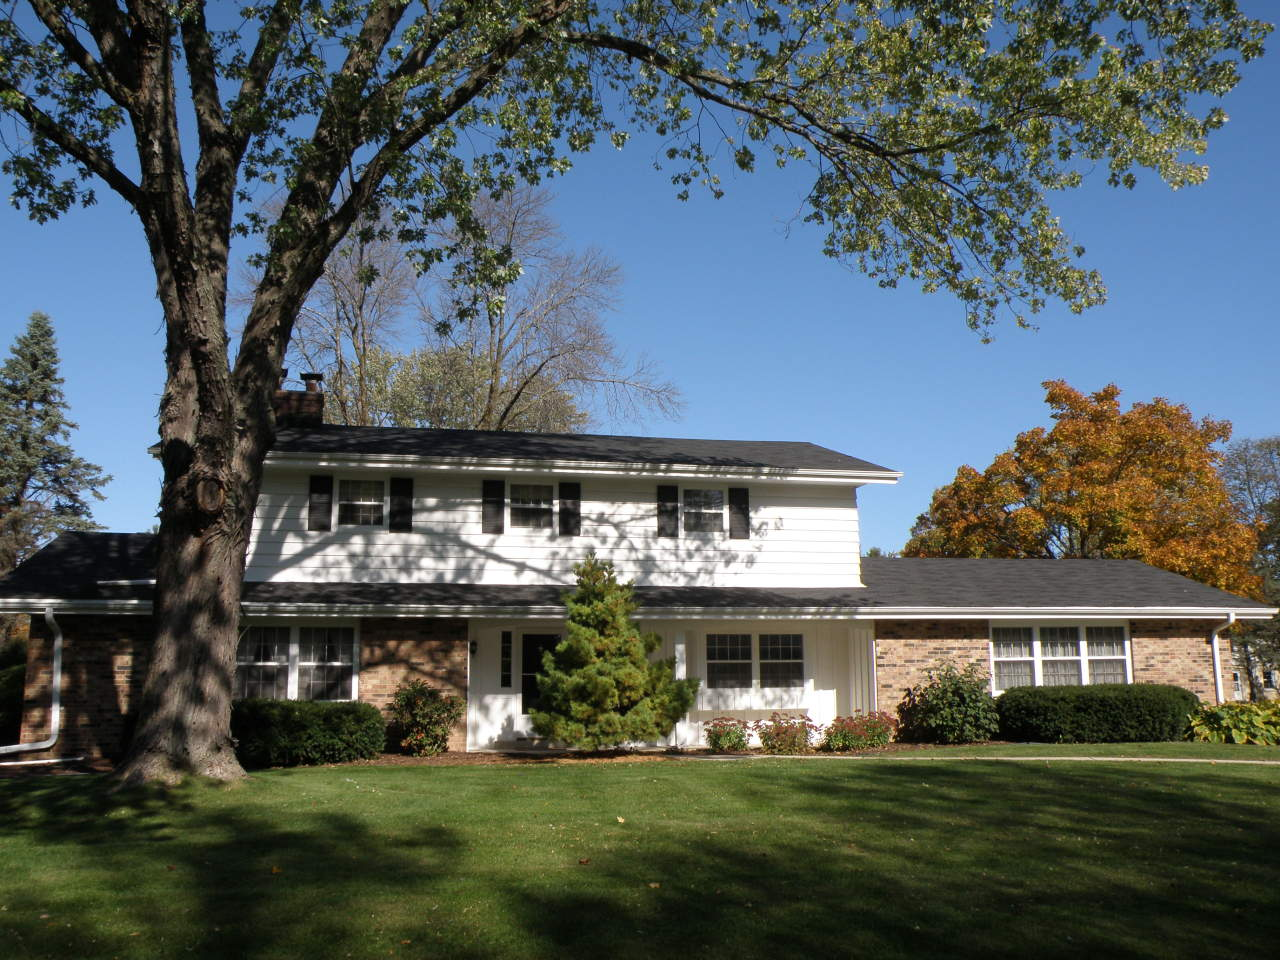 3660 Sunny Crest Dr, Brookfield, Wisconsin 53005, 4 Bedrooms Bedrooms, 9 Rooms Rooms,2 BathroomsBathrooms,Single-Family,For Sale,Sunny Crest Dr,1654000